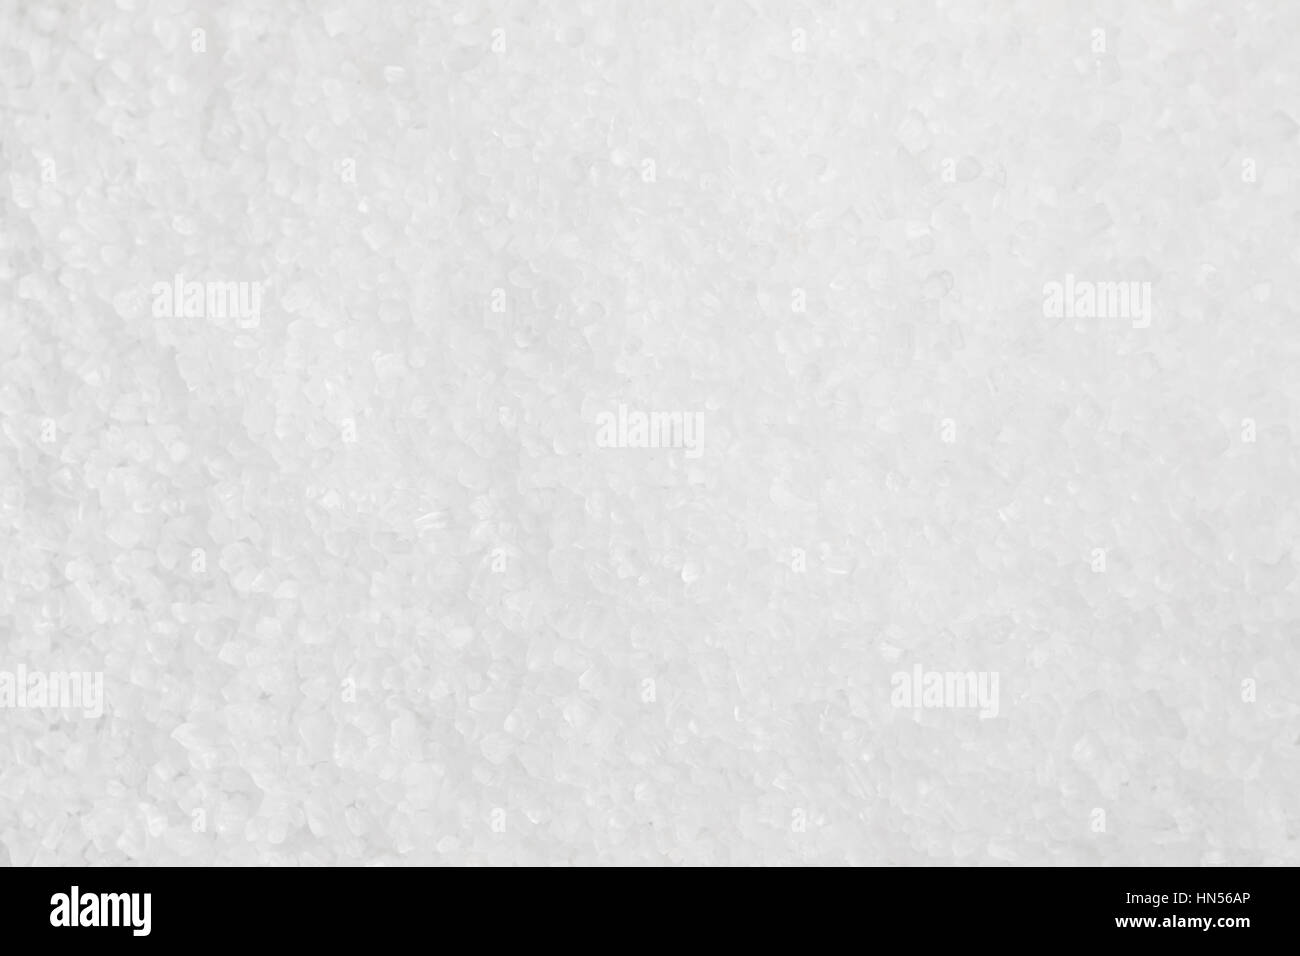 sea salt raw food ingredient texture macro close up detailed Stock Photo